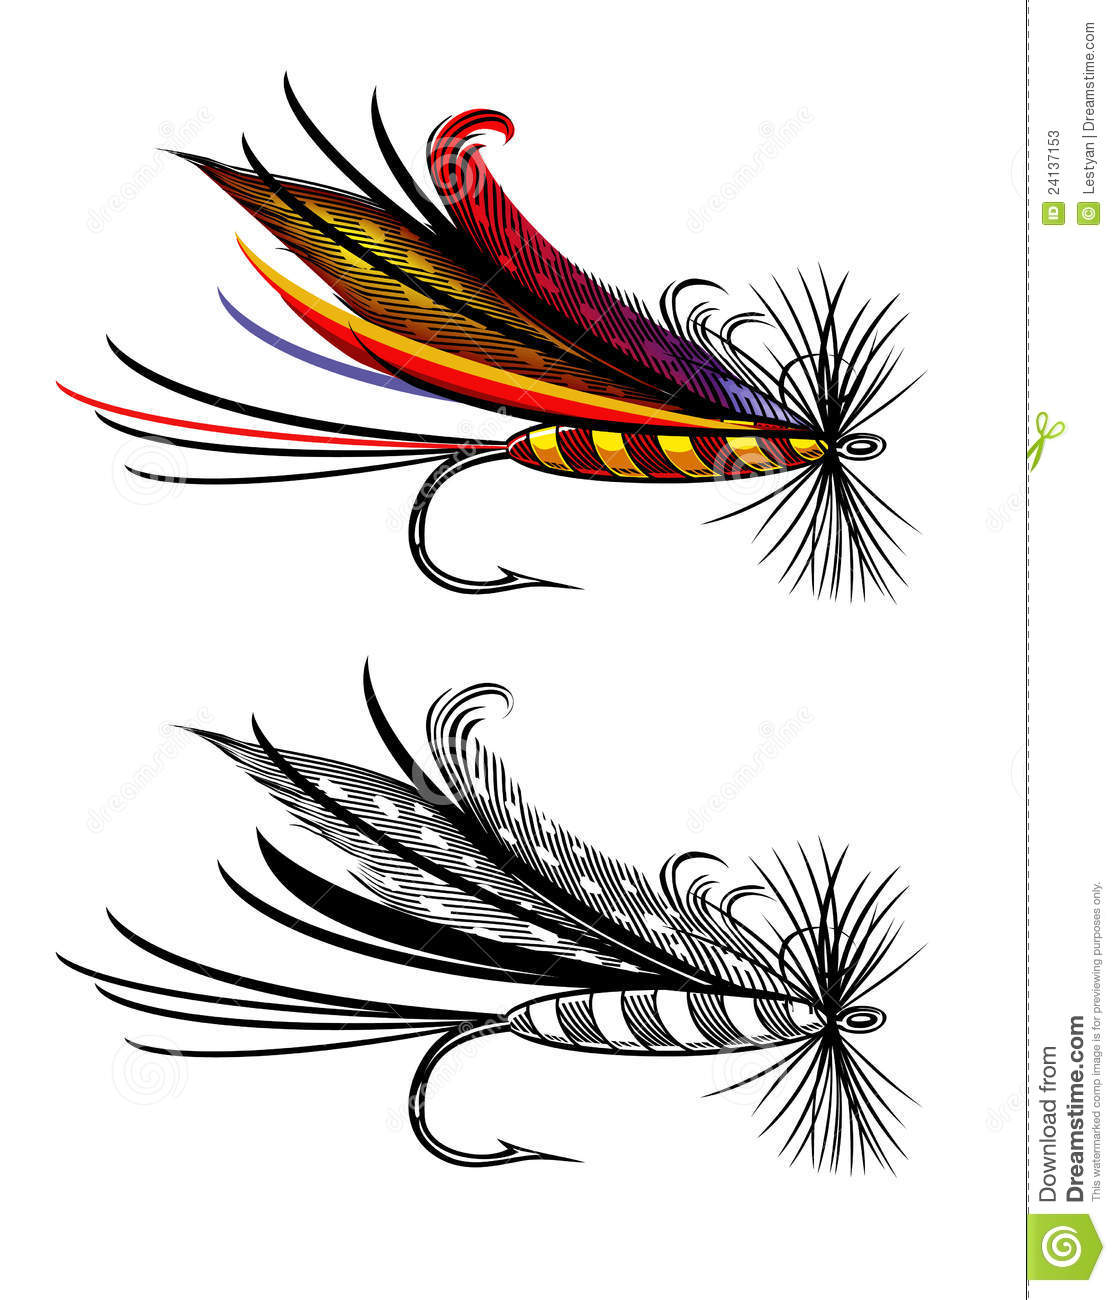 Fishing flies clipart.